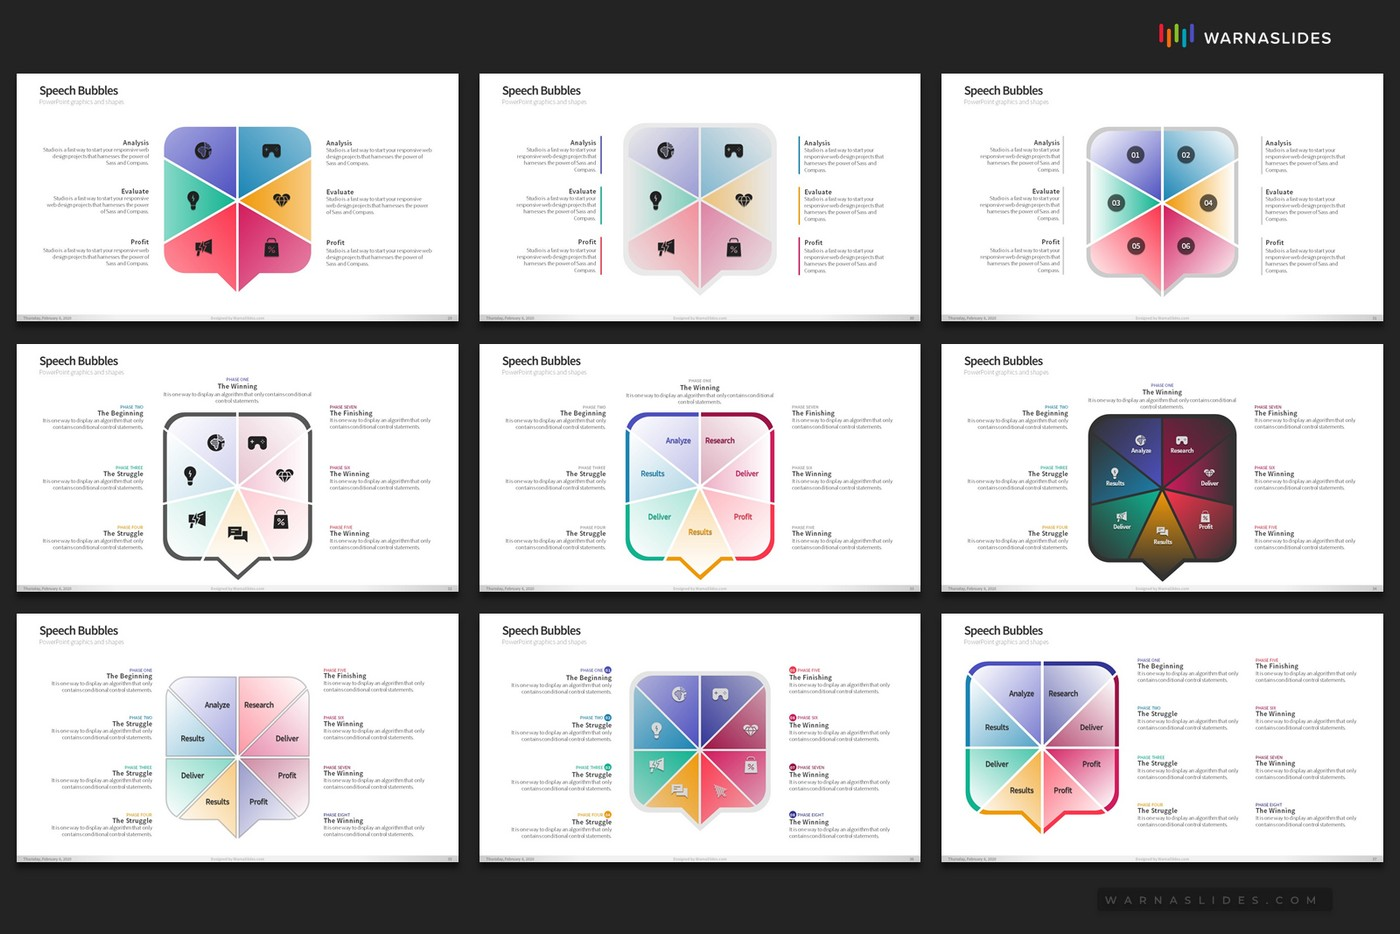 Speech-Bubbles-Communication-PowerPoint-Template-for-Business-Pitch-Deck-Professional-Creative-PowerPoint-Icons-009